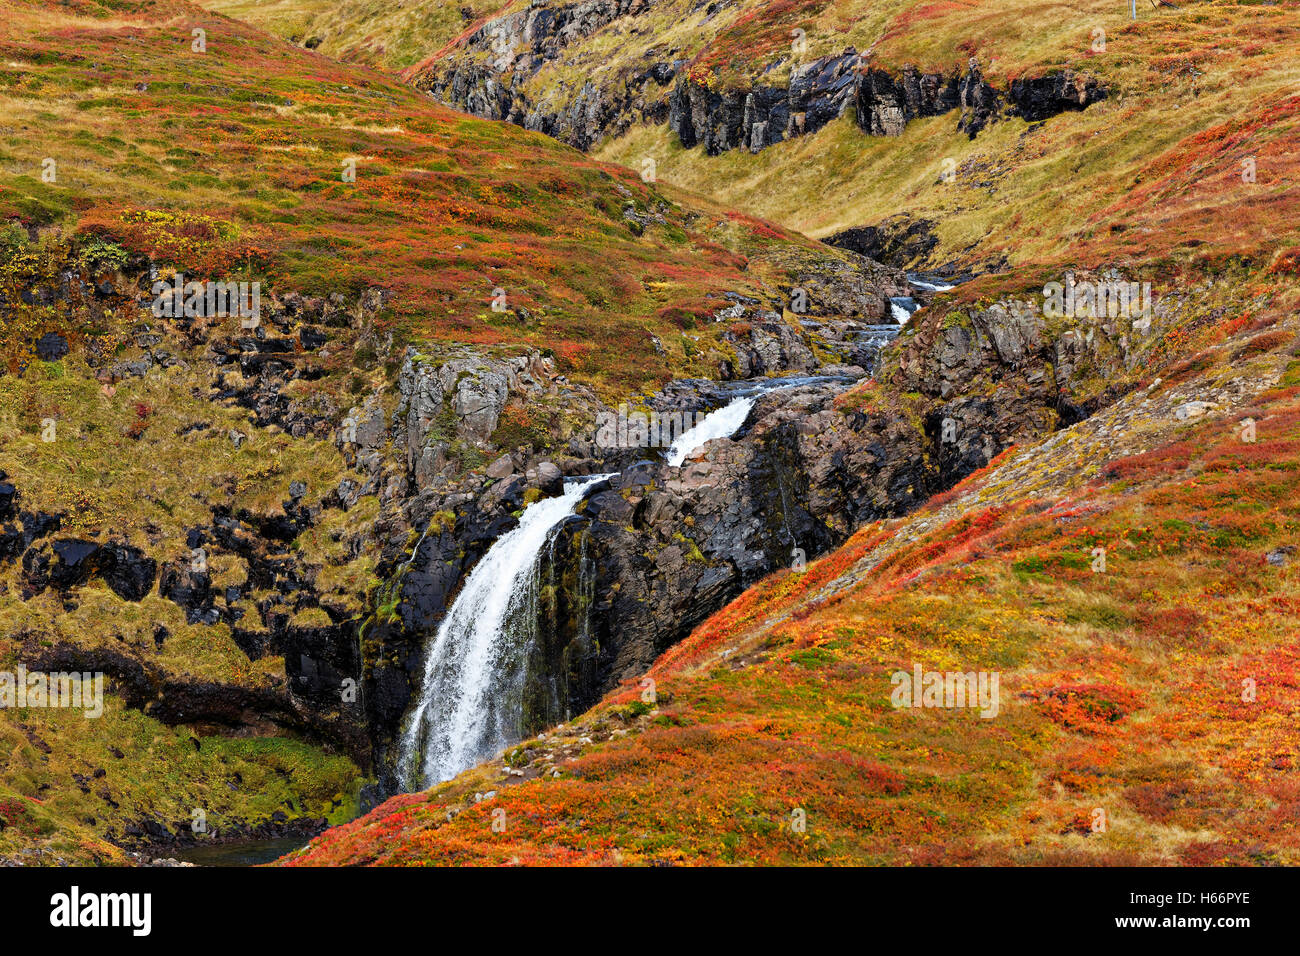 Small waterfall in golden autumn landscape, West Iceland, North Atlantic, Europe - Stock Image